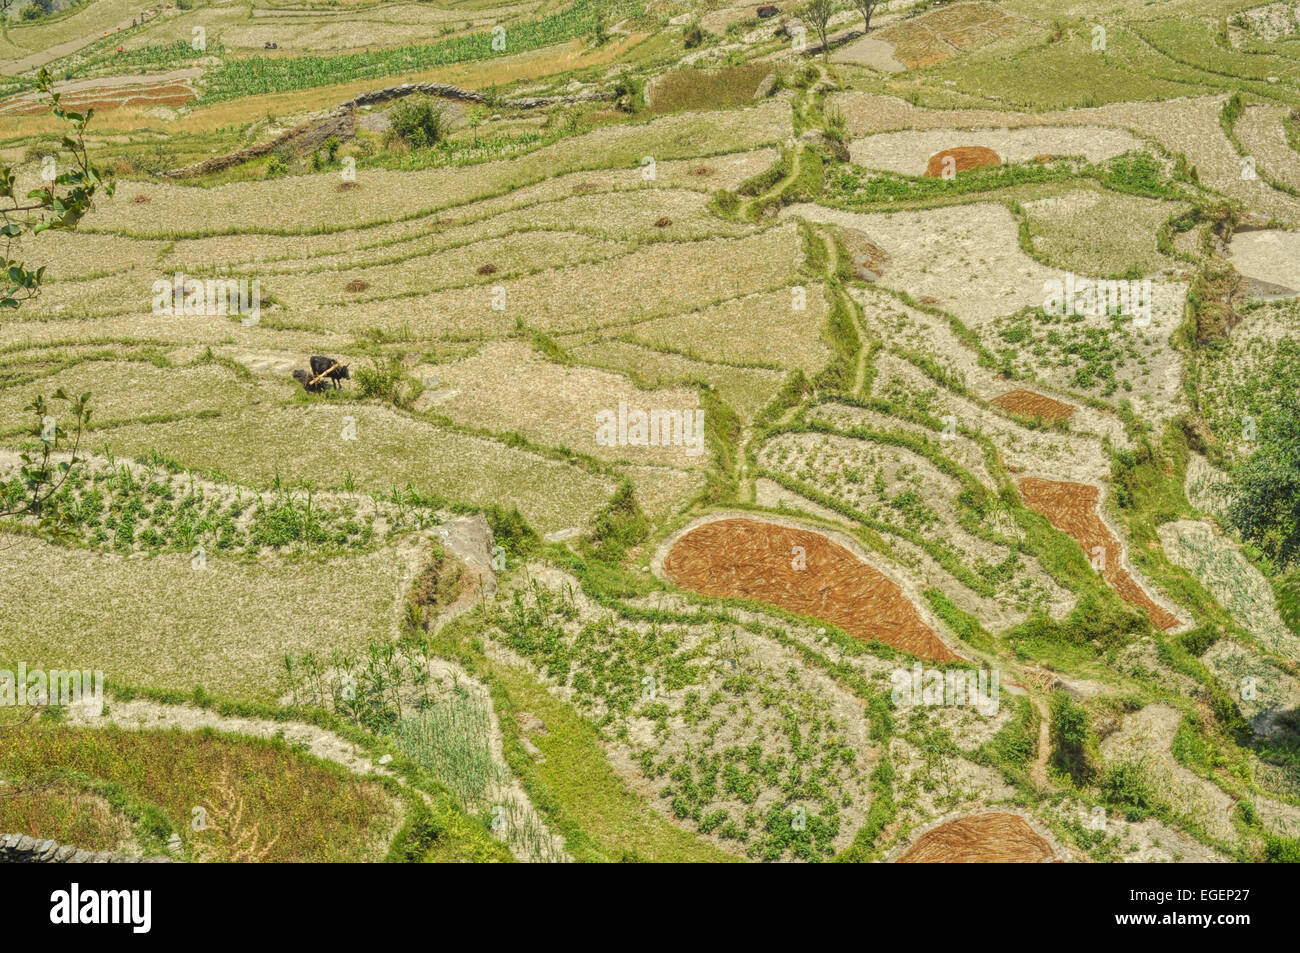 Amazing view of Nepalese terraced fields from above - Stock Image